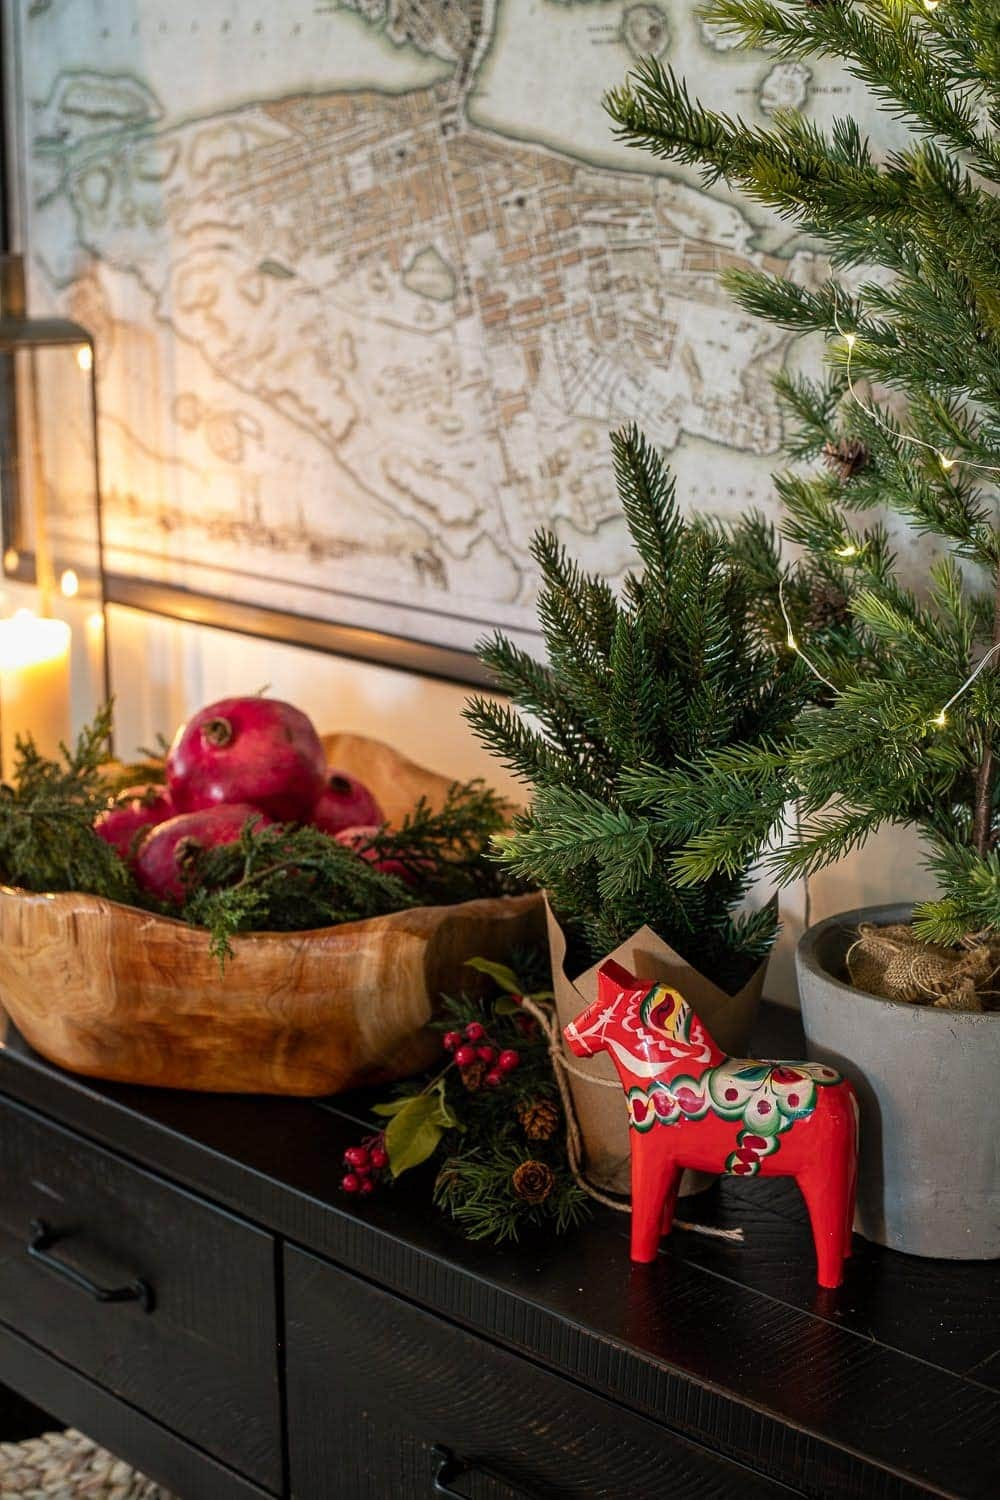 Swedish Christmas vignette with candlelight, Dala horse, bowl of pomegranates, greenery, and twinkle lights for hygge